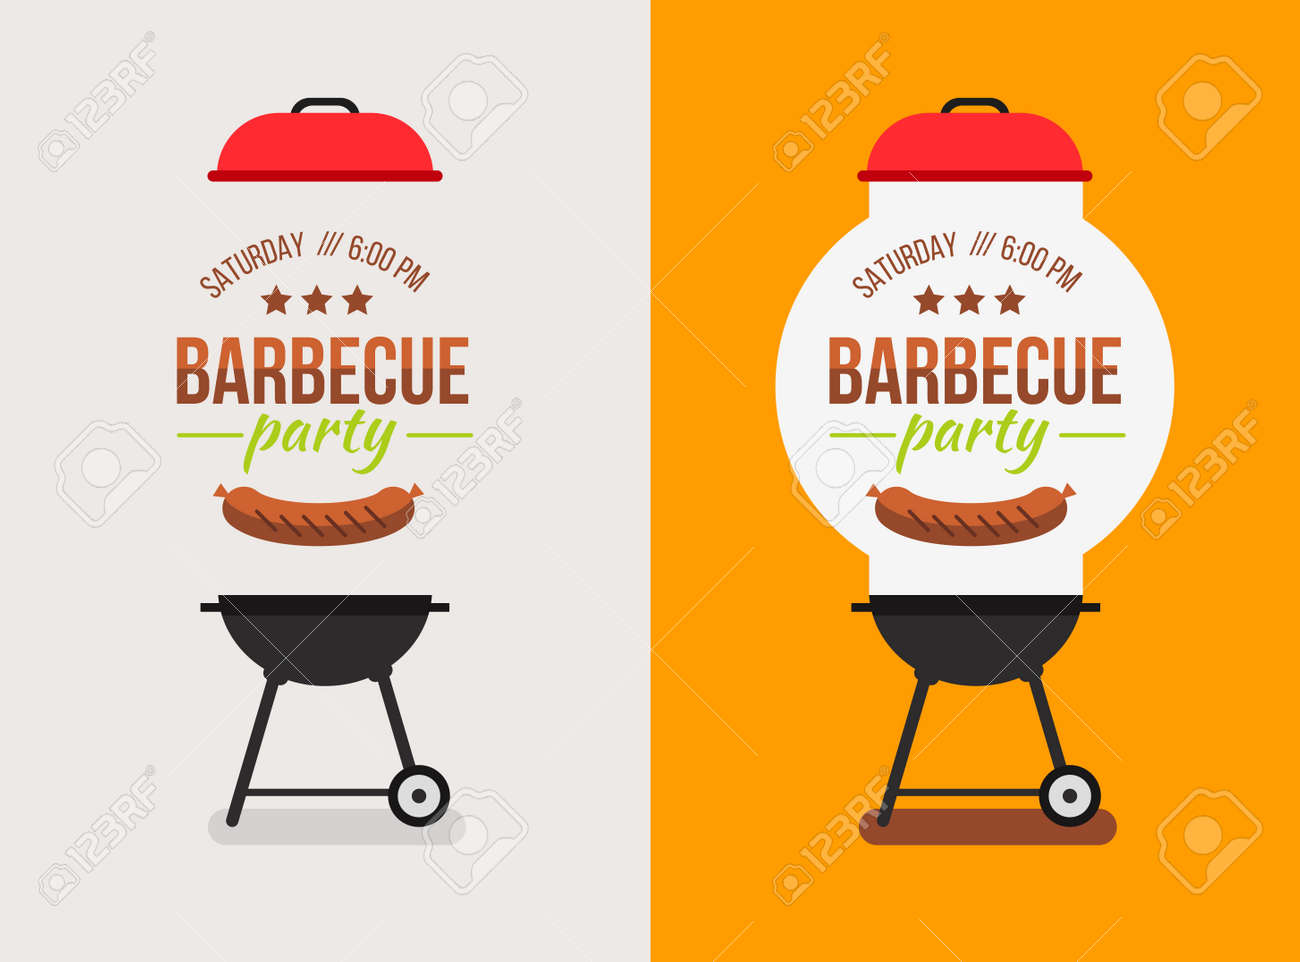 Bbq Or Barbecue Party Invitation. Vector Illustration. Royalty ...